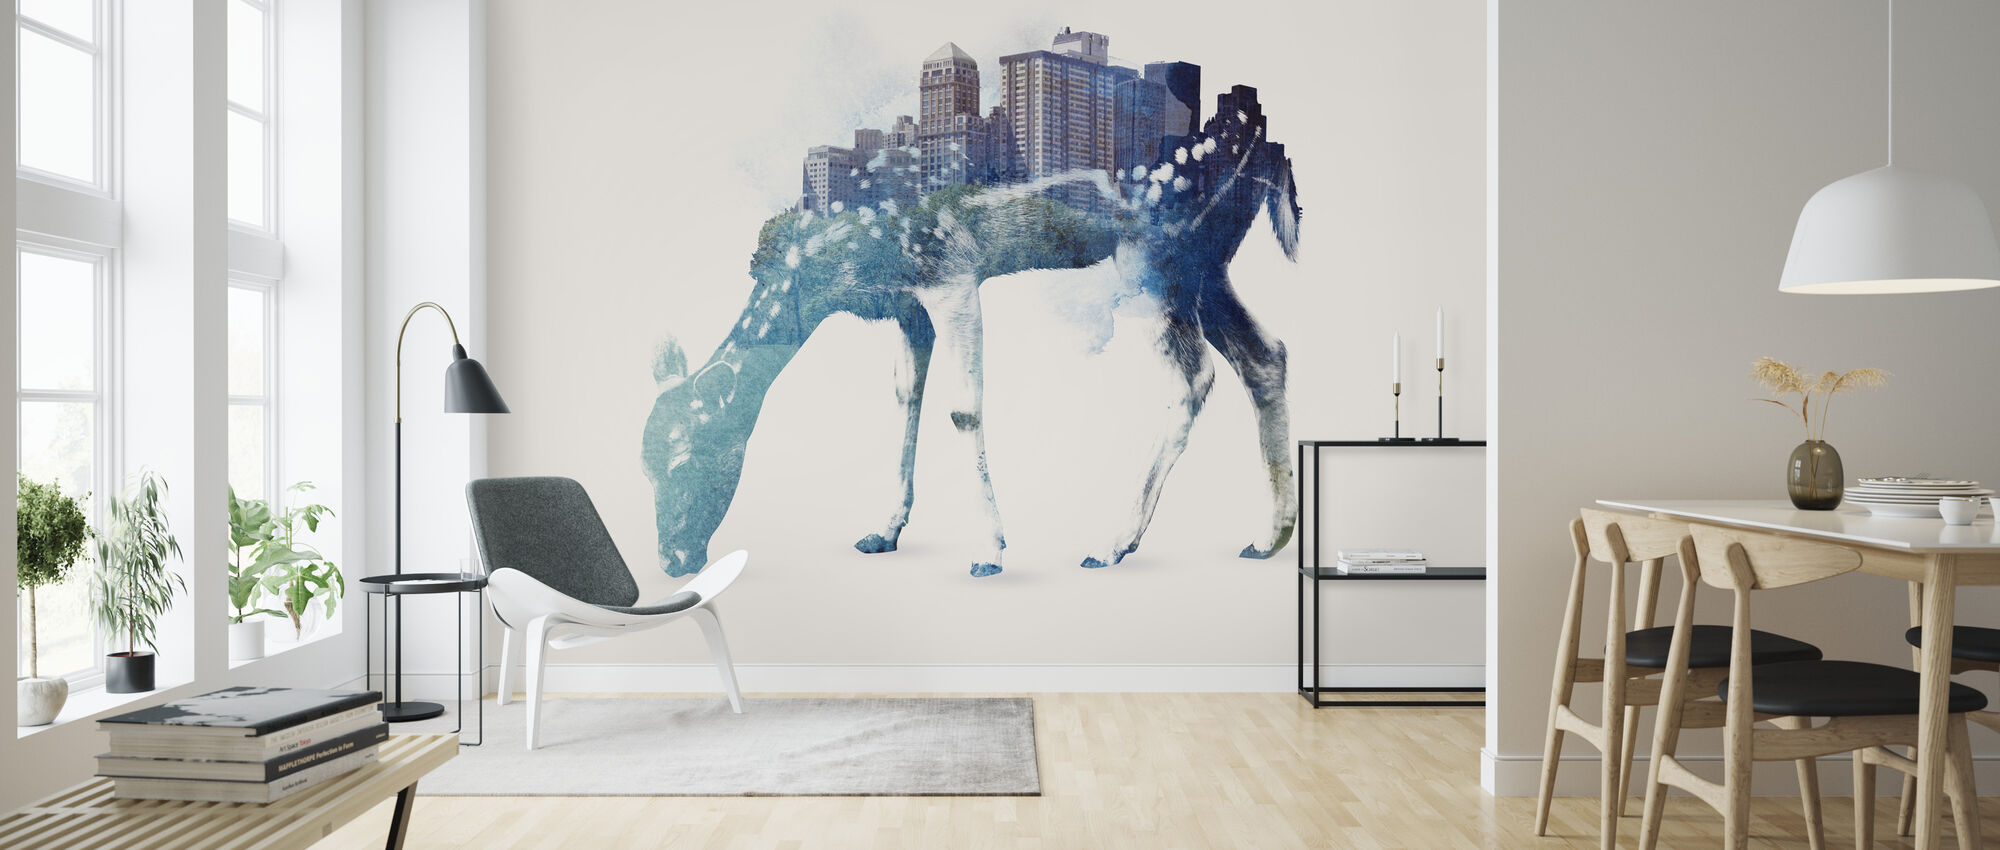 City Deer - Wallpaper - Living Room